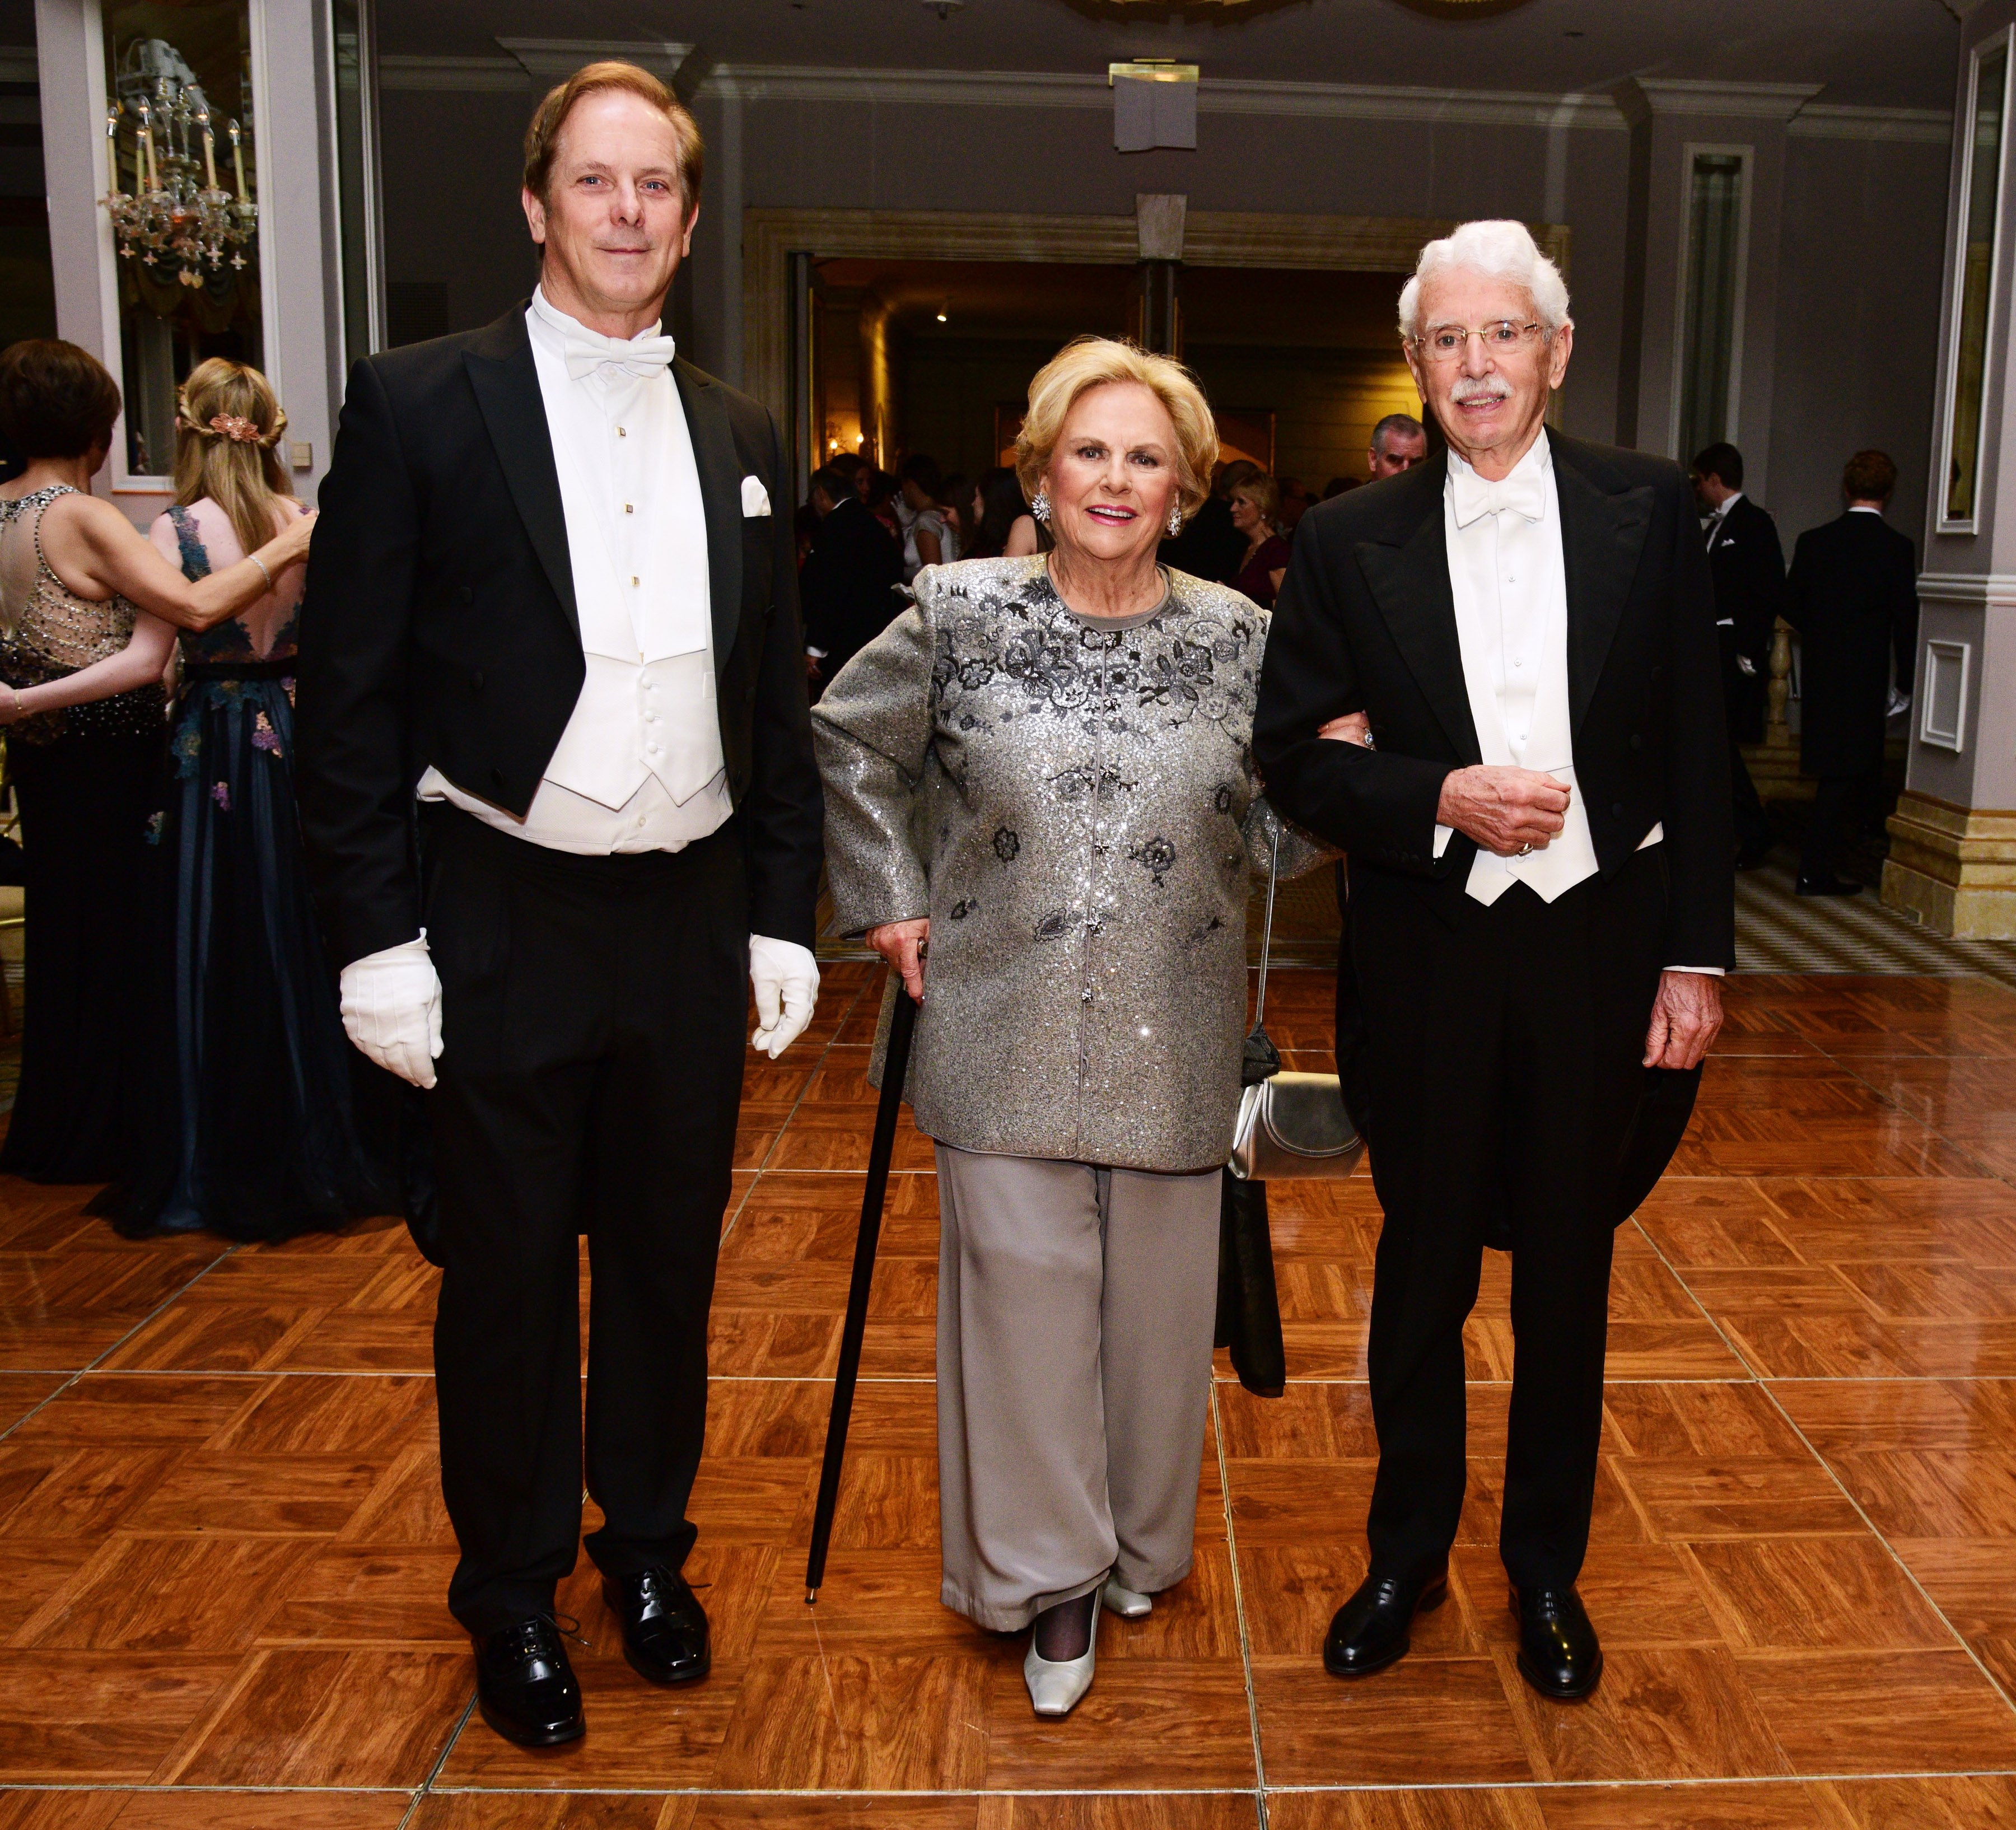 hayne Doty, Jacqueline Mars and David Badger attend The International Debutante Ball at The Pierre Hotel on December 29, 2018 in New York City.  | Photo: GettyImages